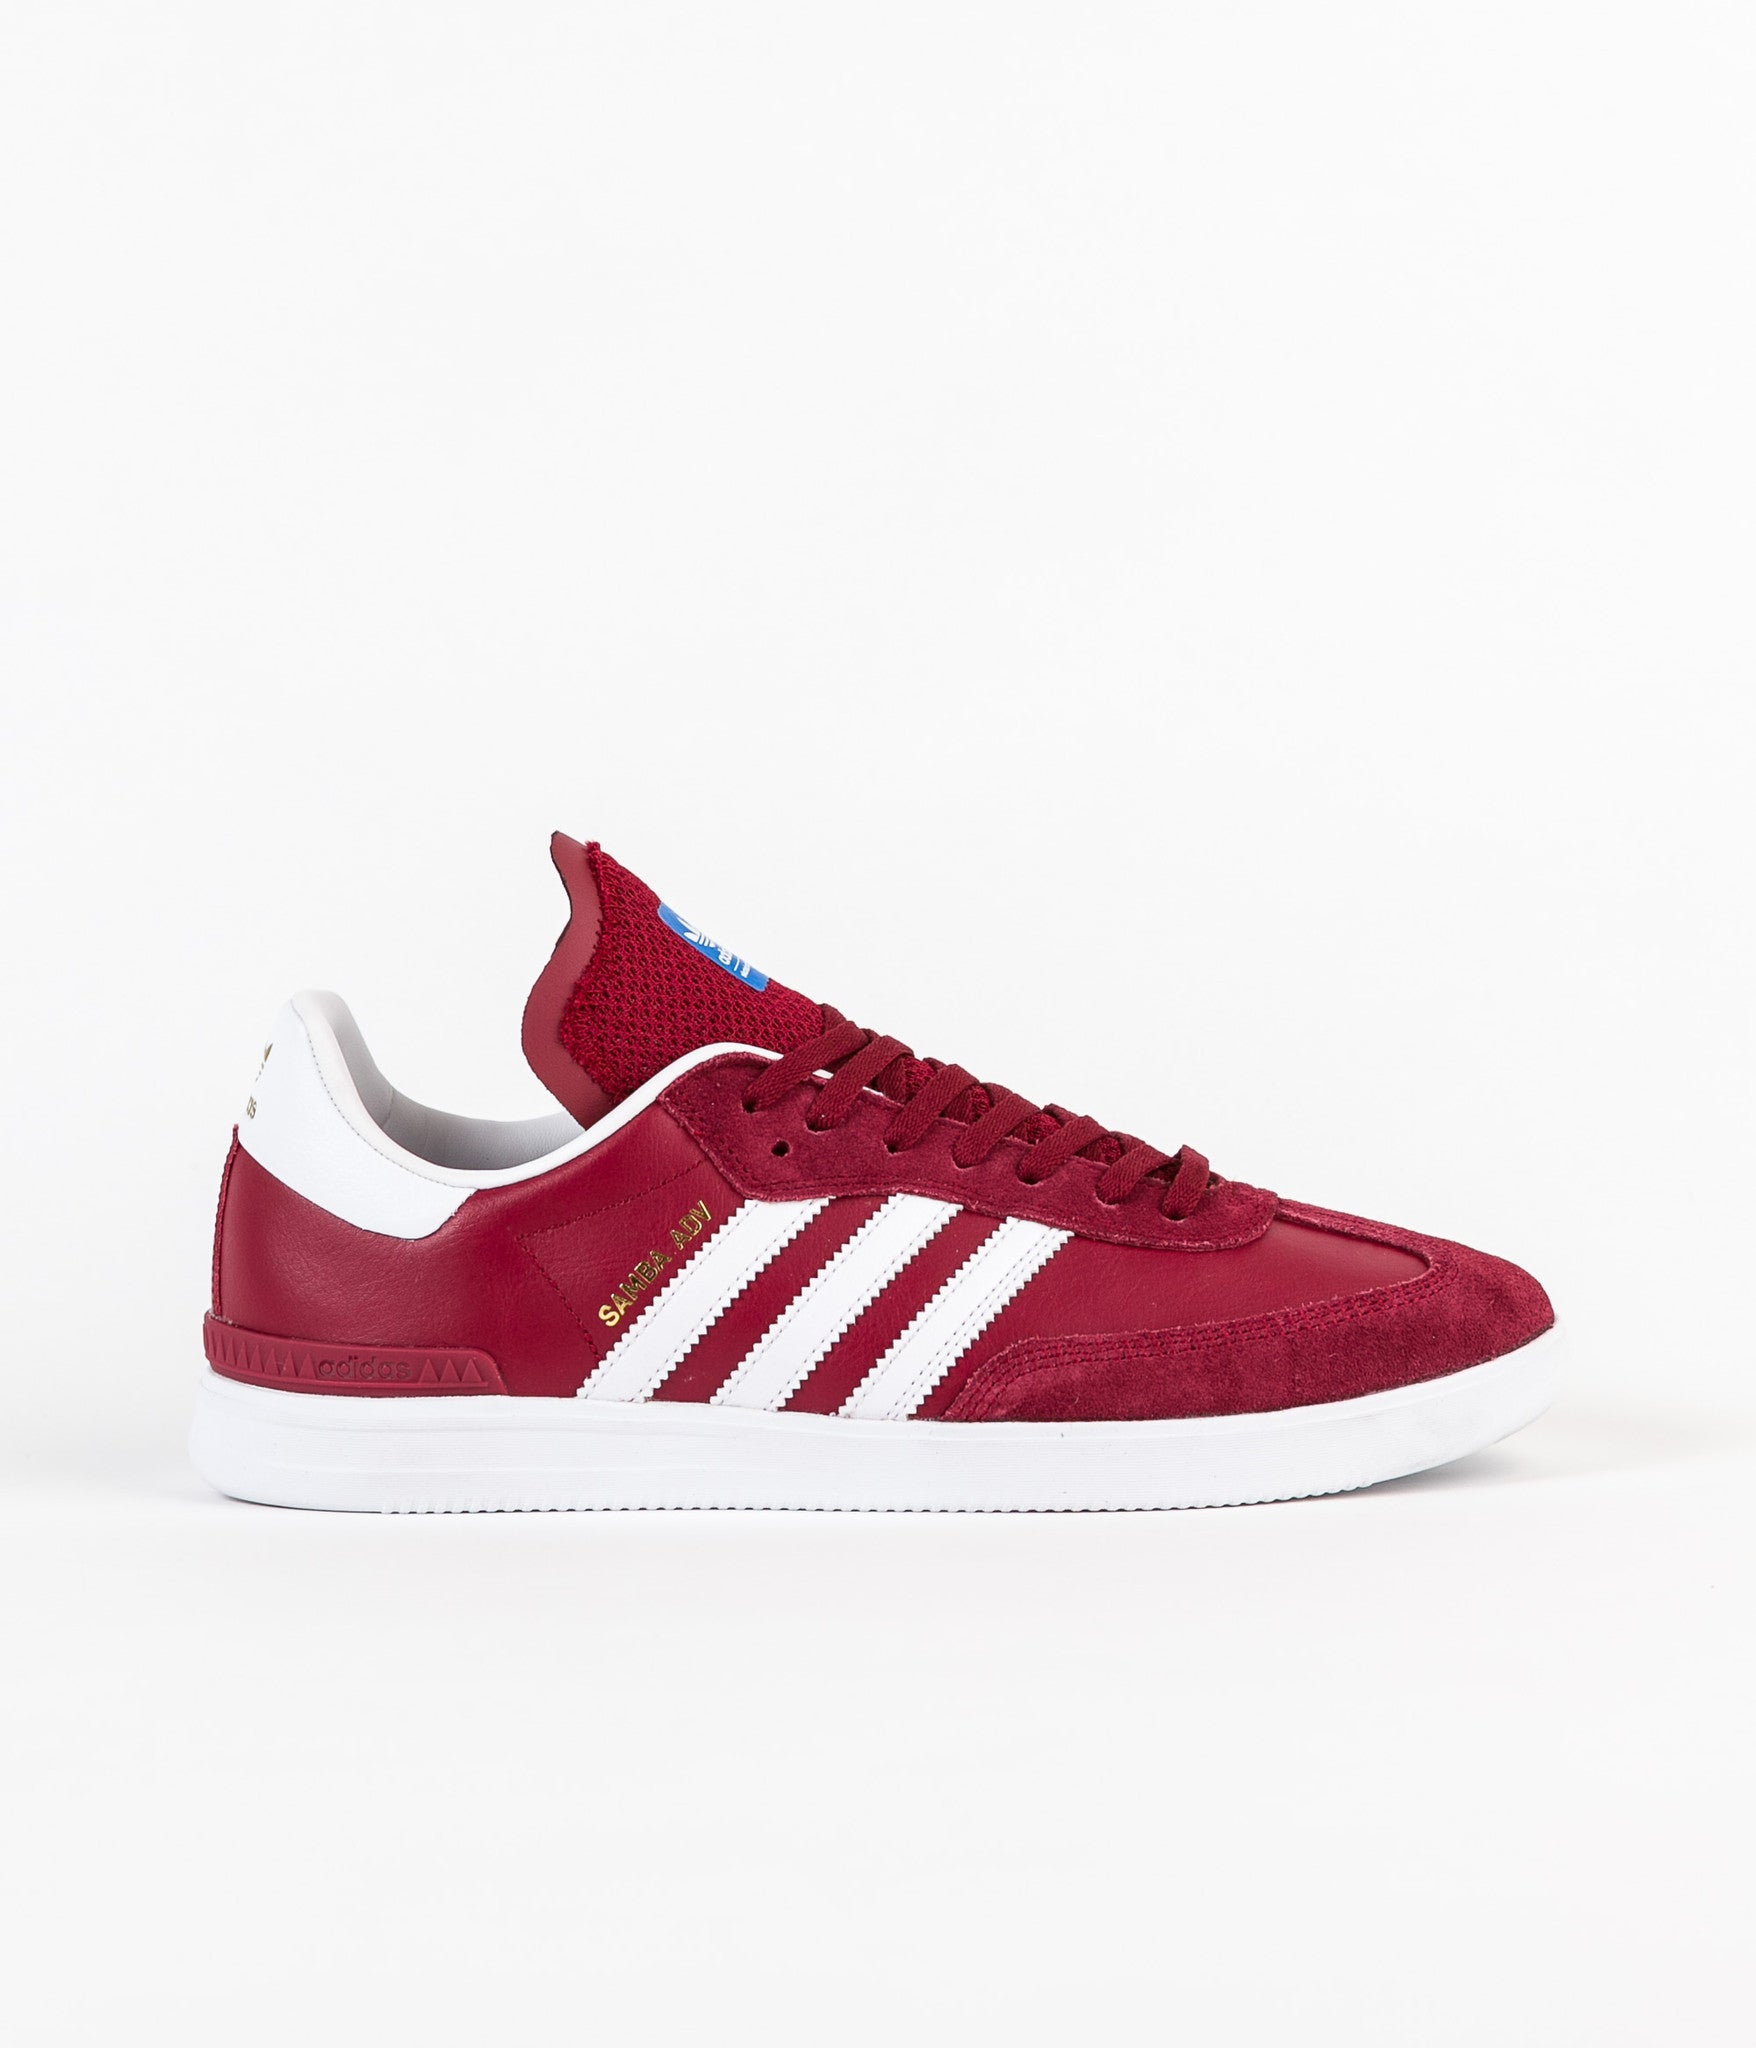 Adidas Samba Adv Shoes - Collegiate Burgundy / White / Bluebird